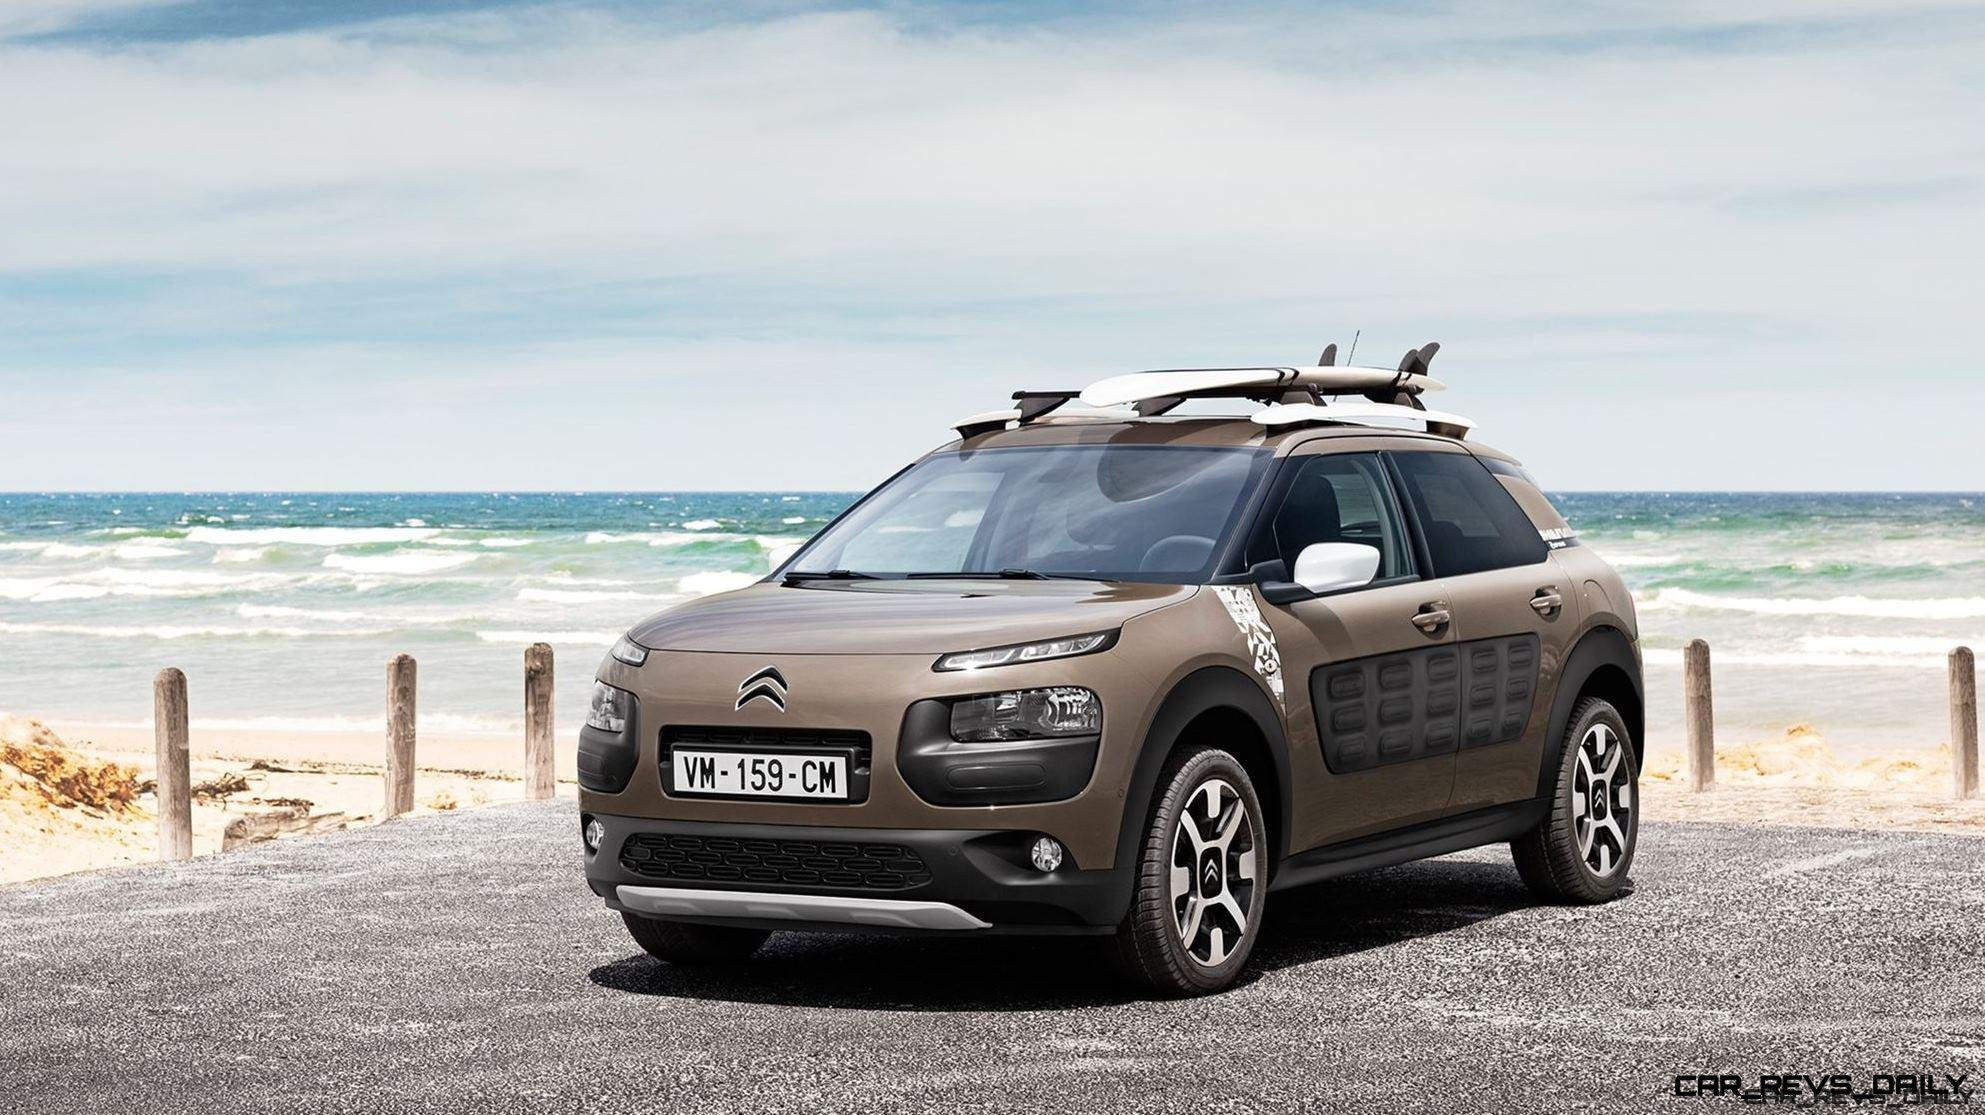 2016 Citroen C4 Cactus Rip Curl Edition Dark Detailing Gripcontrol Glass Roof For Surfer Special Car Revs Daily Com